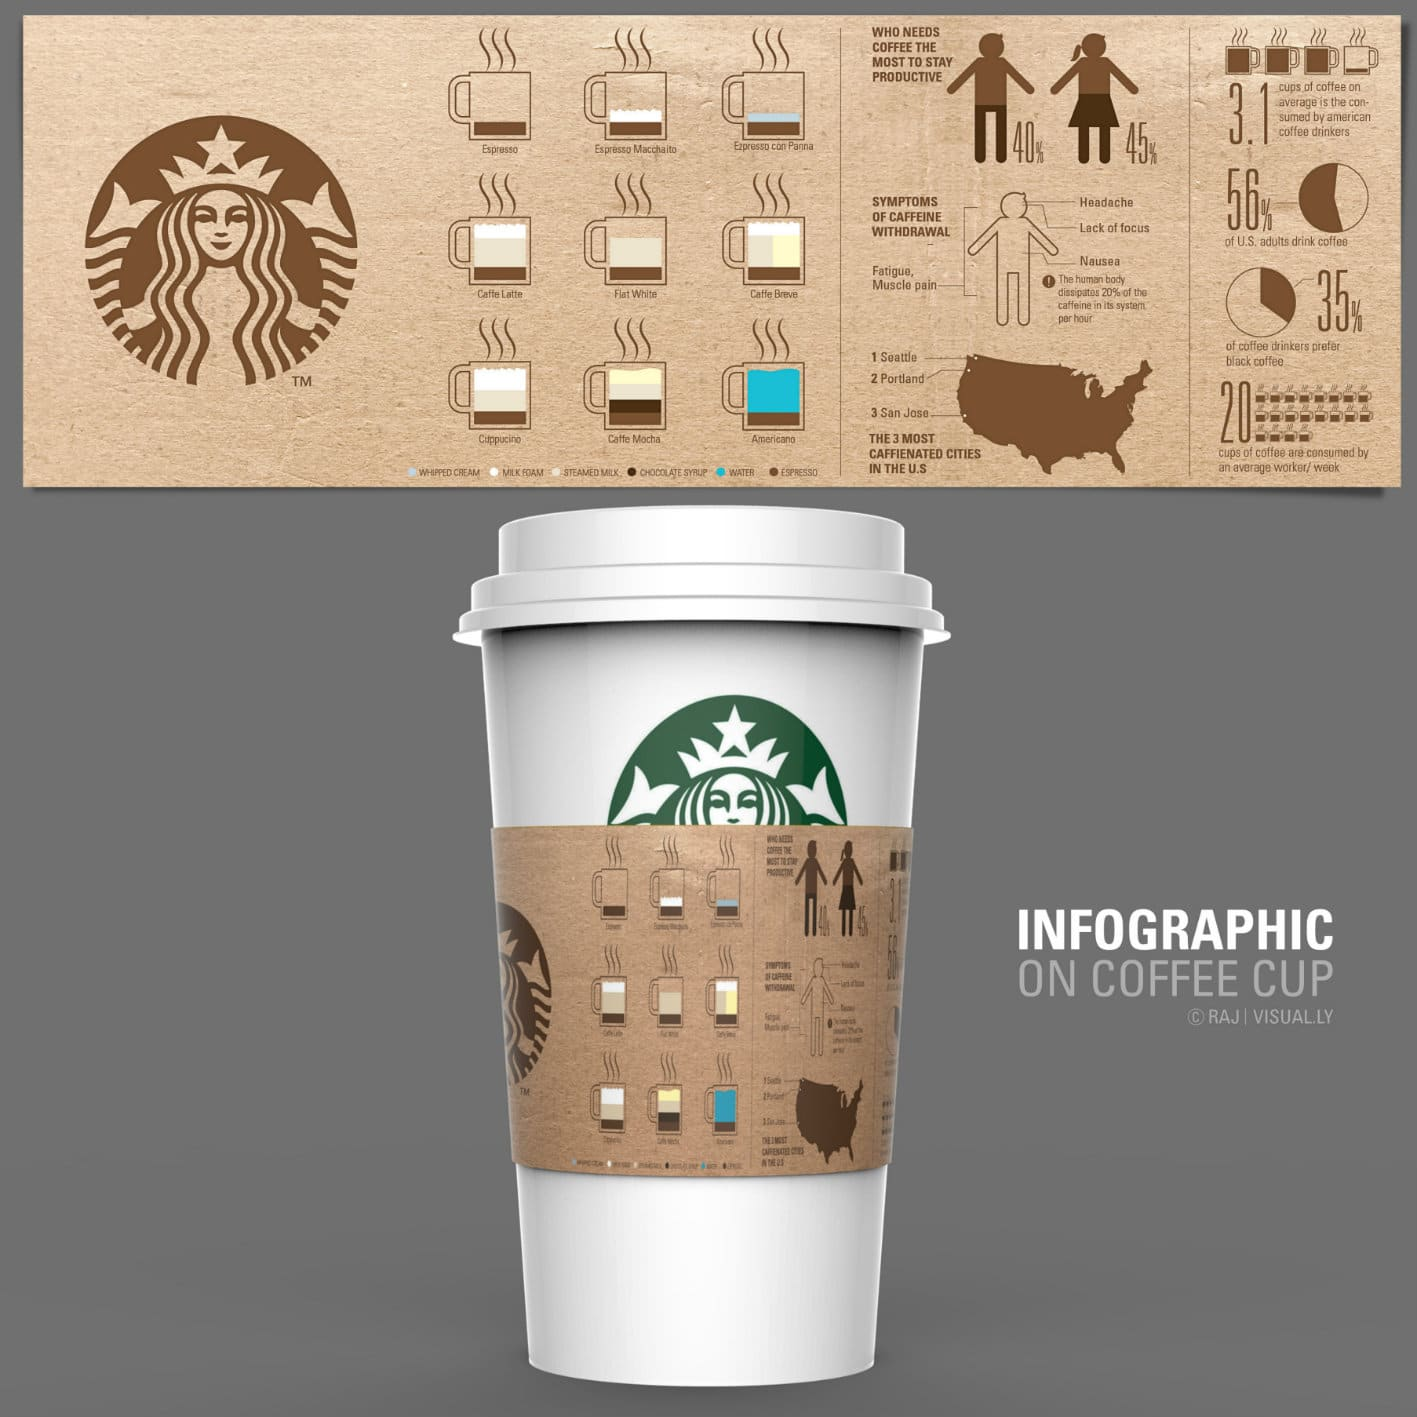 Infographic on a Coffee Cup